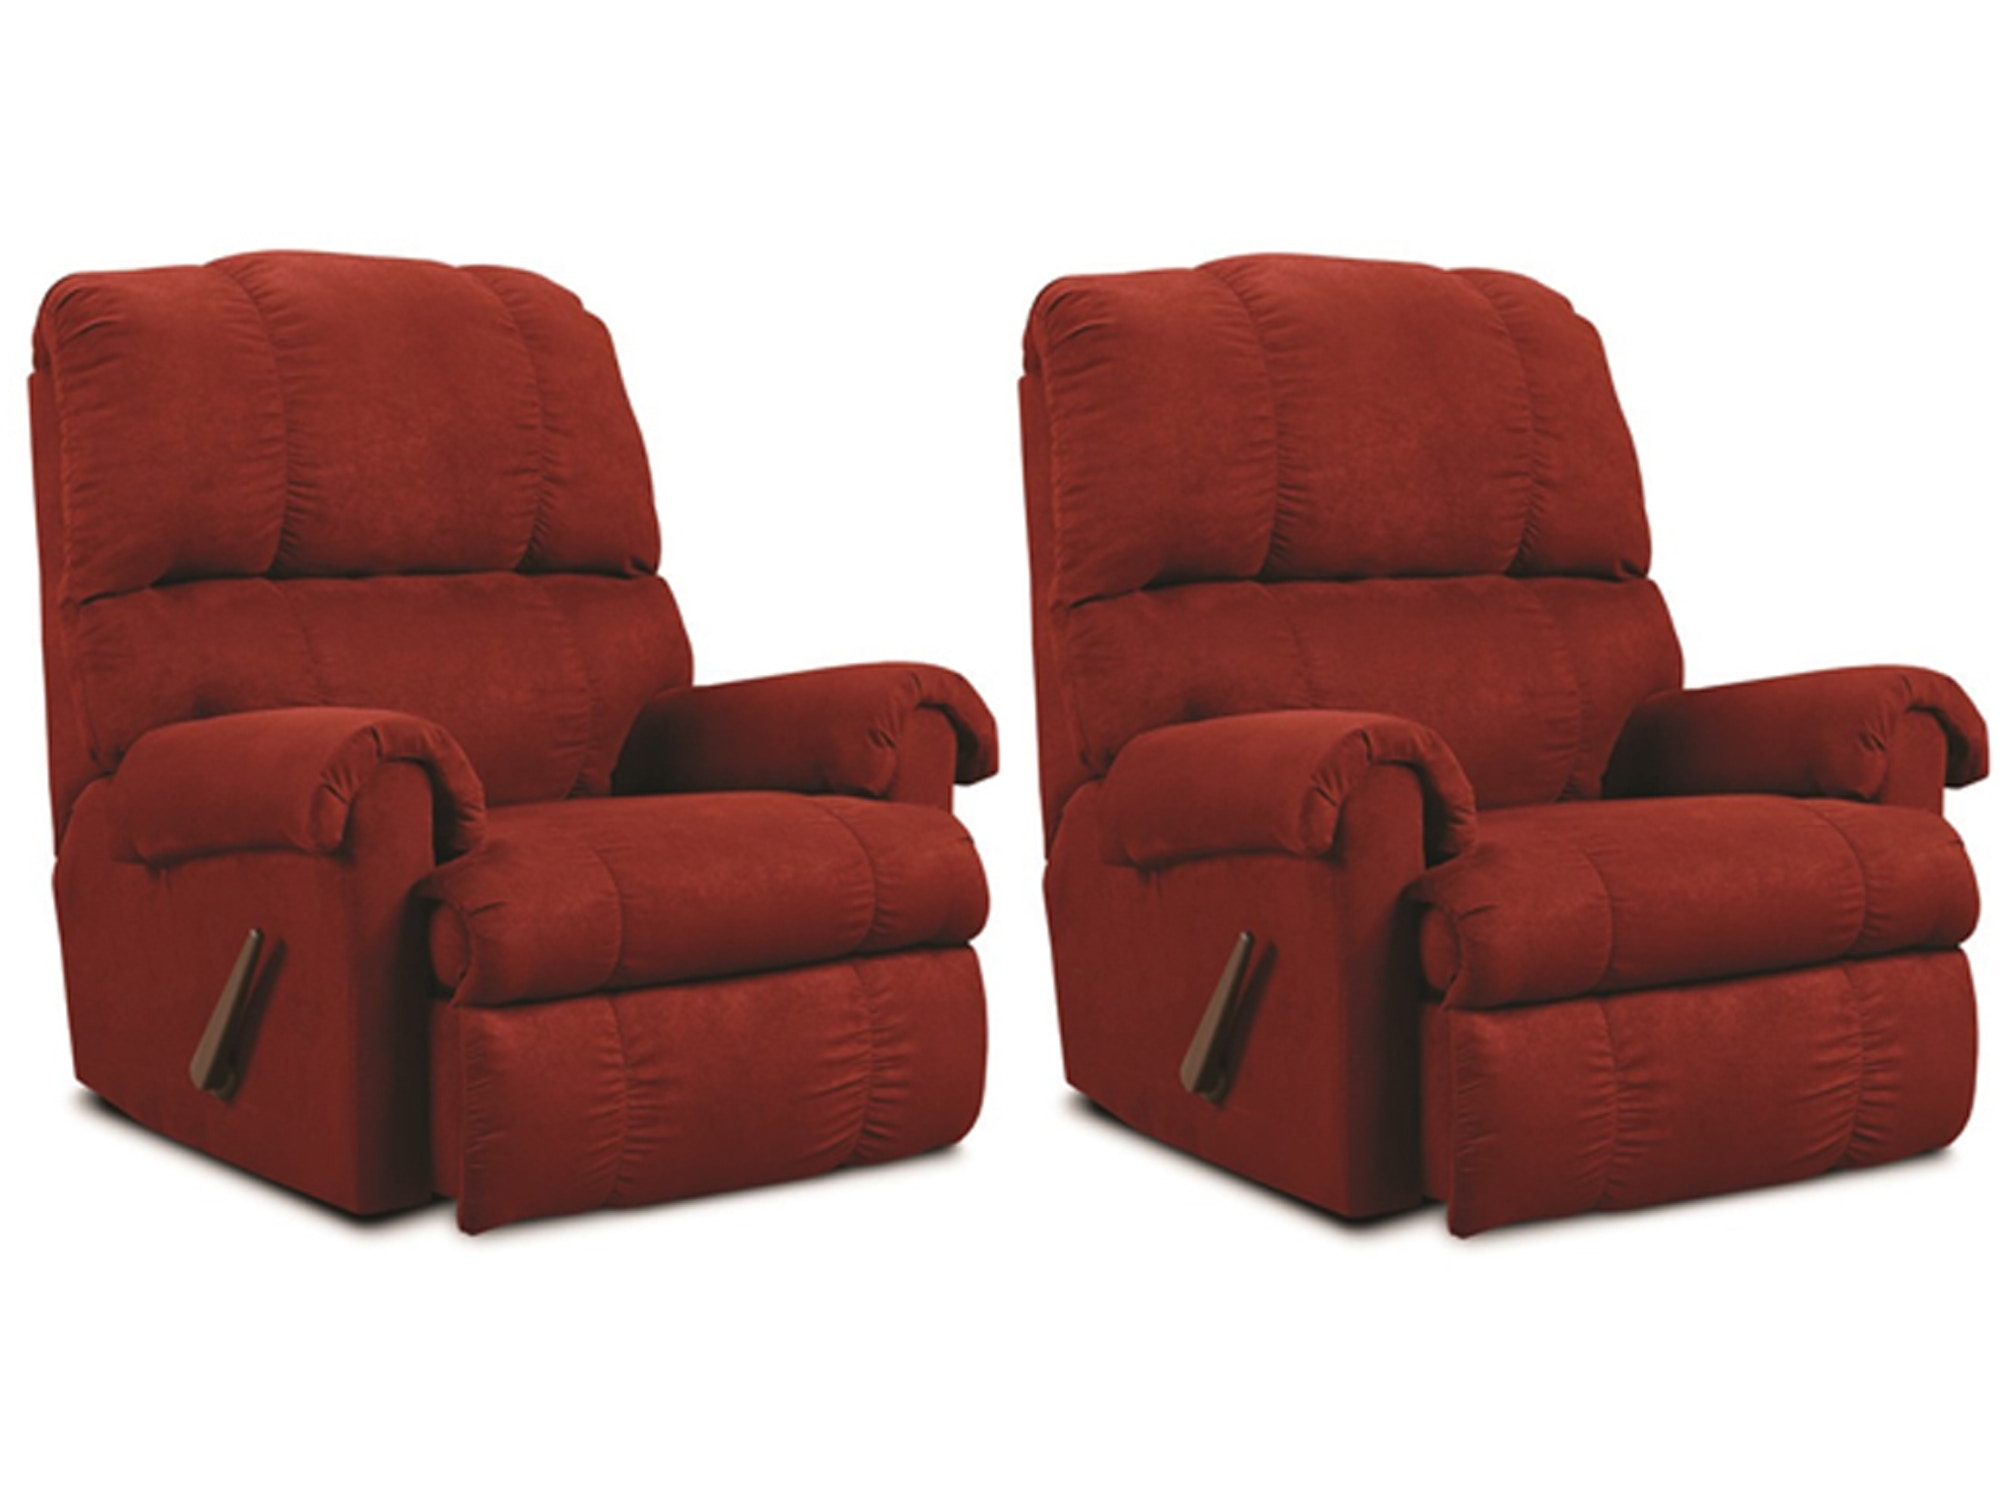 Redrock Rocker Recliner Pair 162152